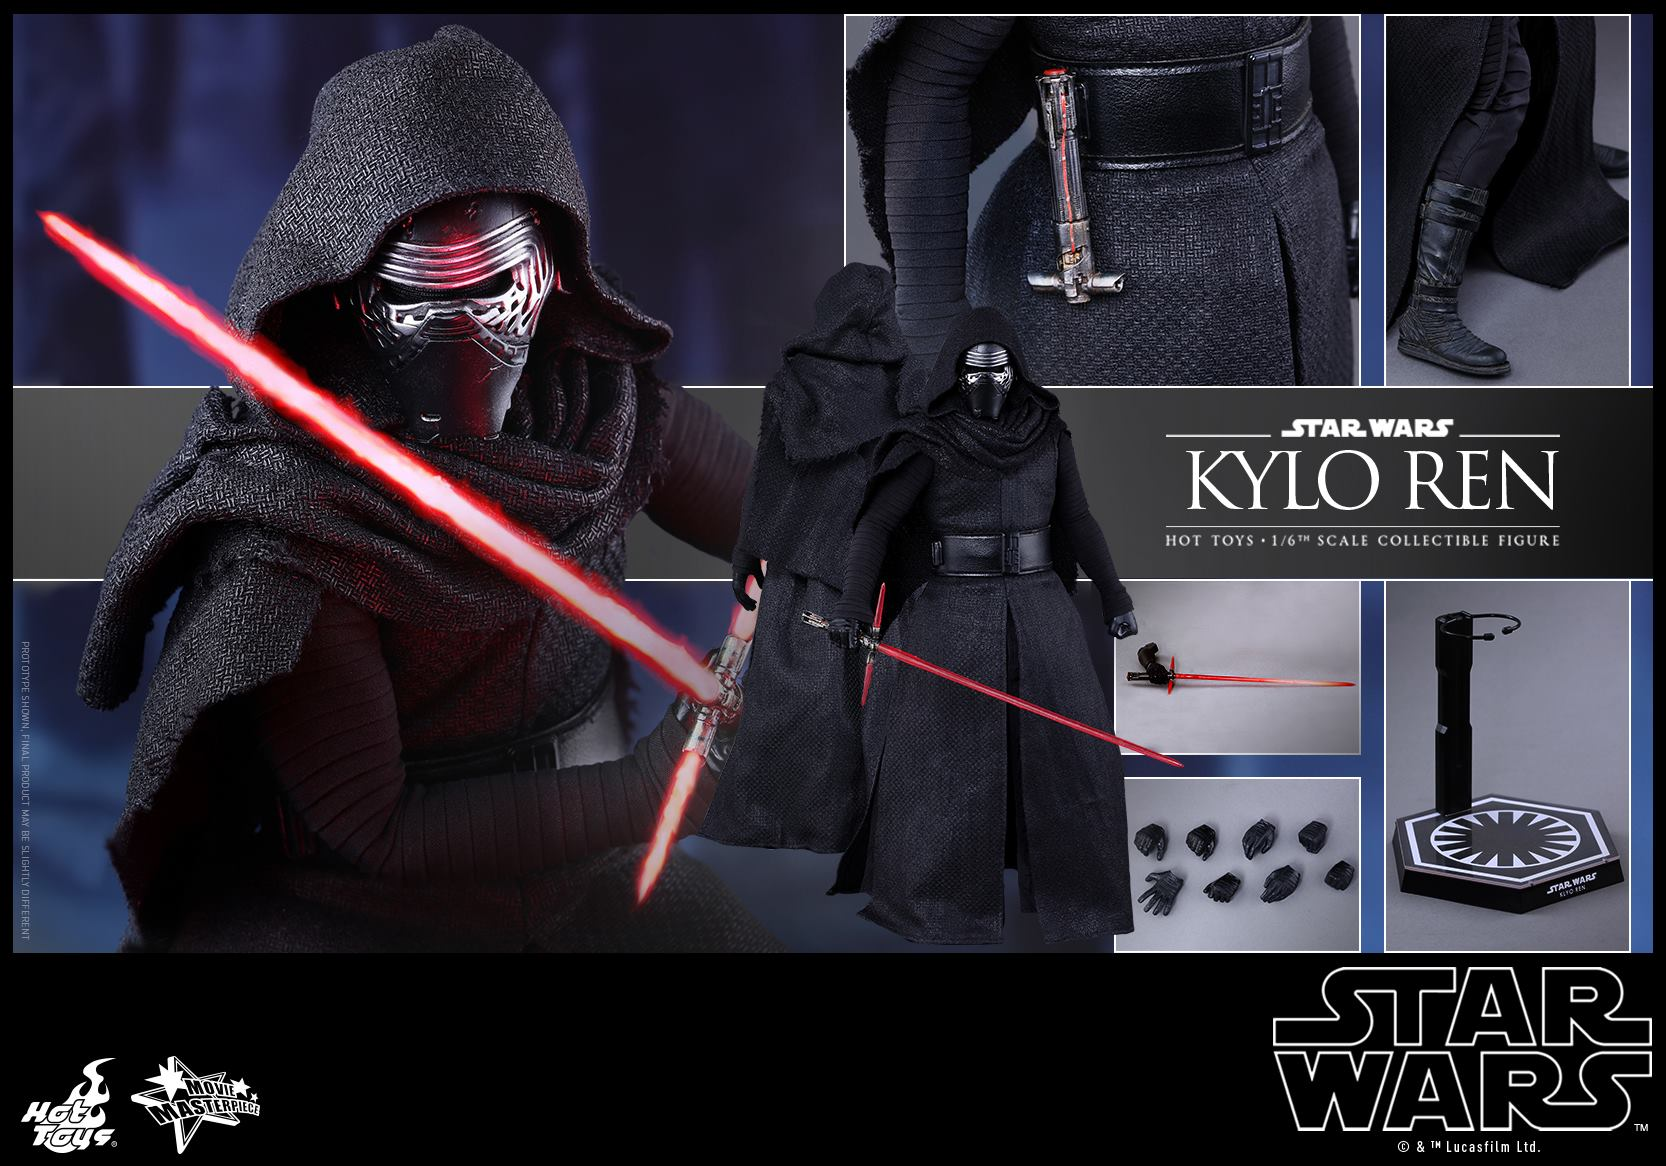 HOT TOYS - Star Wars: TFA - Kylo Ren 960691115